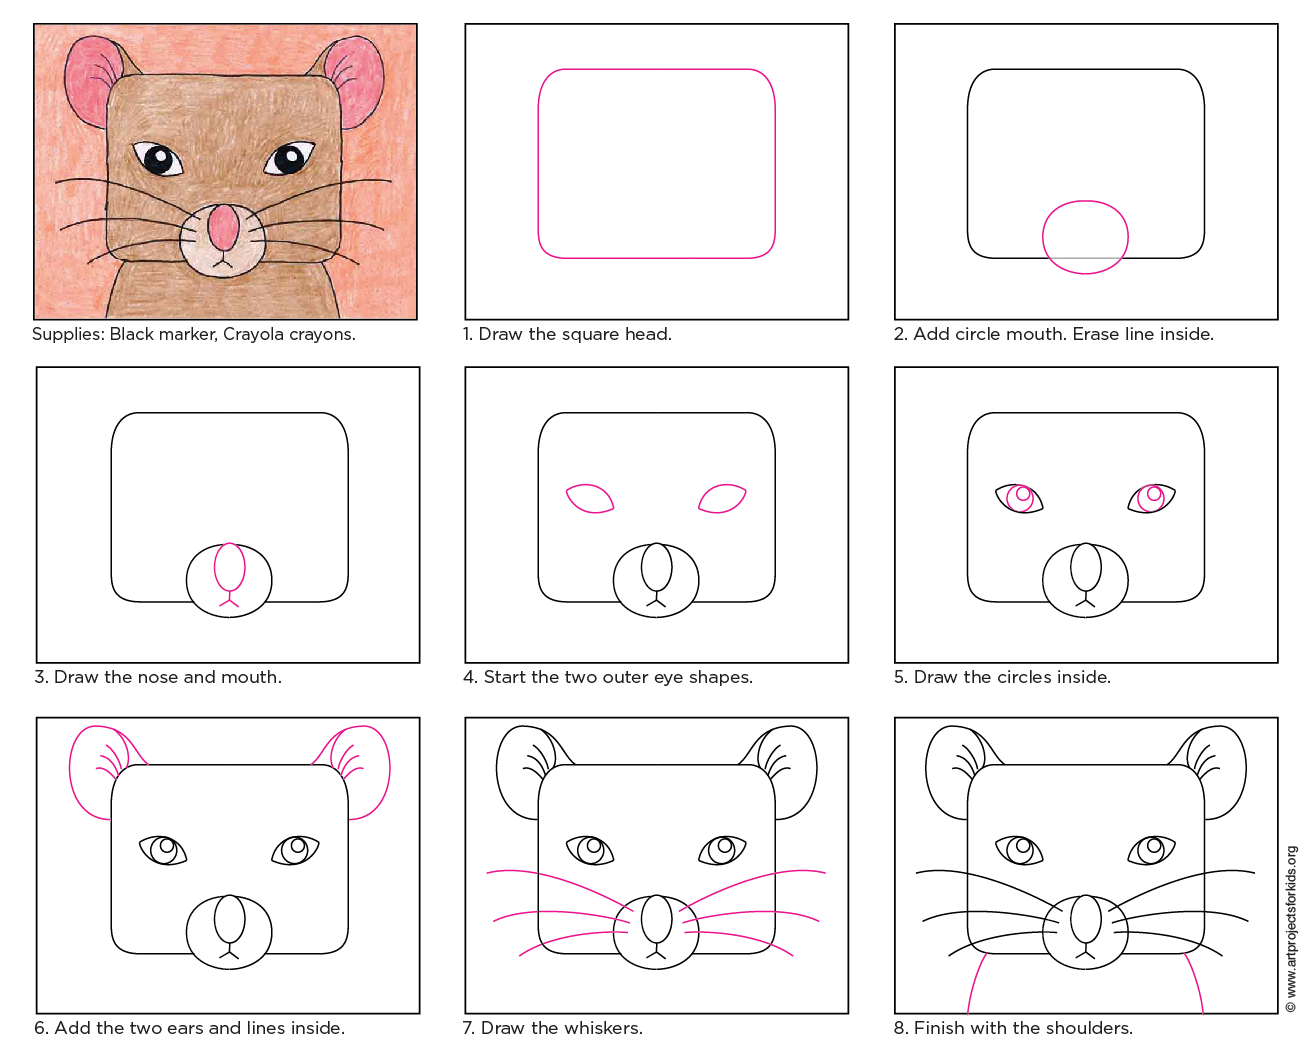 A Diagram Of The Animal Mouse Data Schema Wireless Schematic Draw Face Art Projects For Kids Rat Dissection Usb